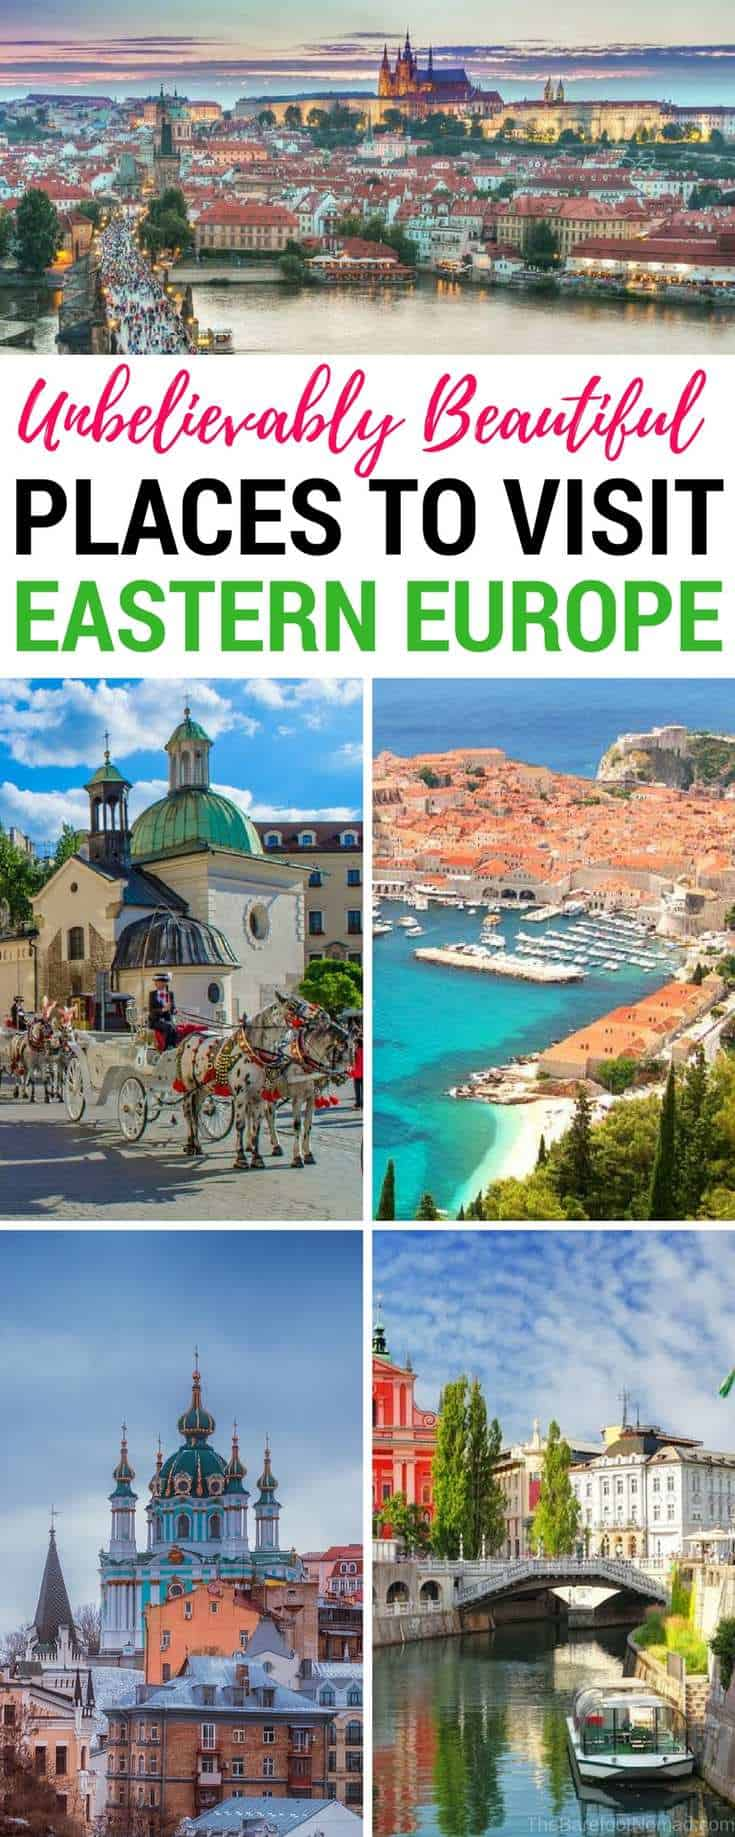 Beautiful places to visit in Eastern Europe. Have you always wanted to visit Eastern Europe, but didn't know where to start? Here are our very favorite picks for the best Europe travel destinations, like Prague, Czech Republic, Mostar, Bosnia and Herzegovina, and Belgrade, Serbia! #europe #europeancountries #travel #traveltips #Prague